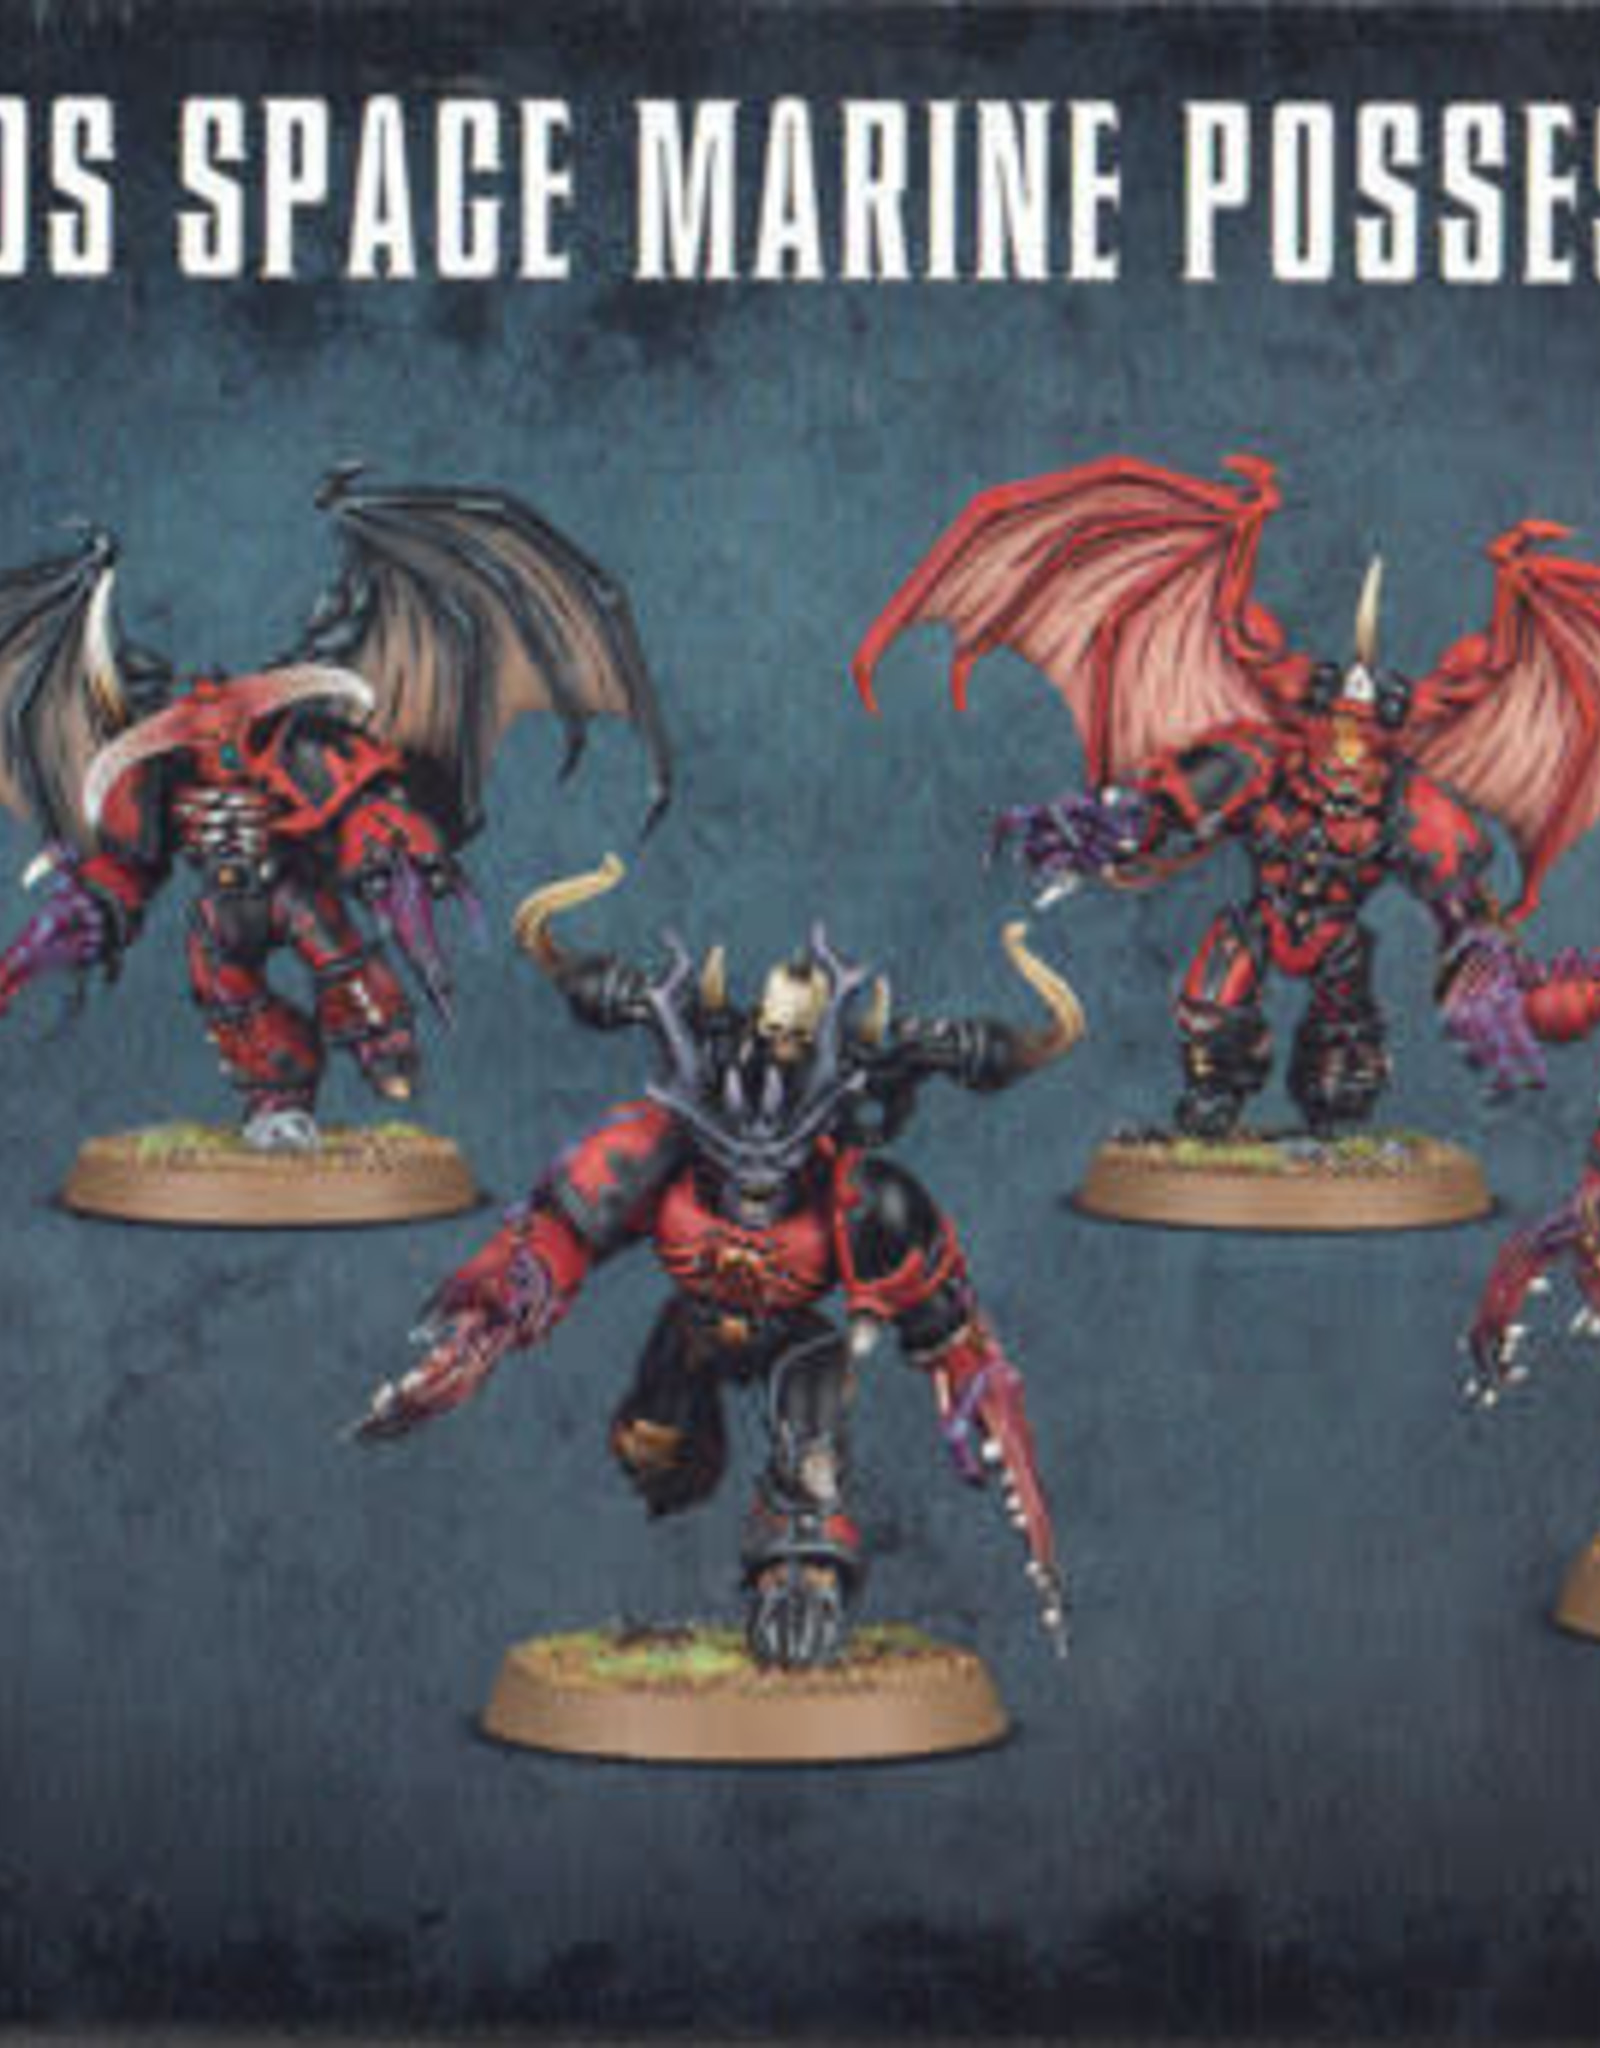 Warhammer 40K Chaos Space Marines Possessed